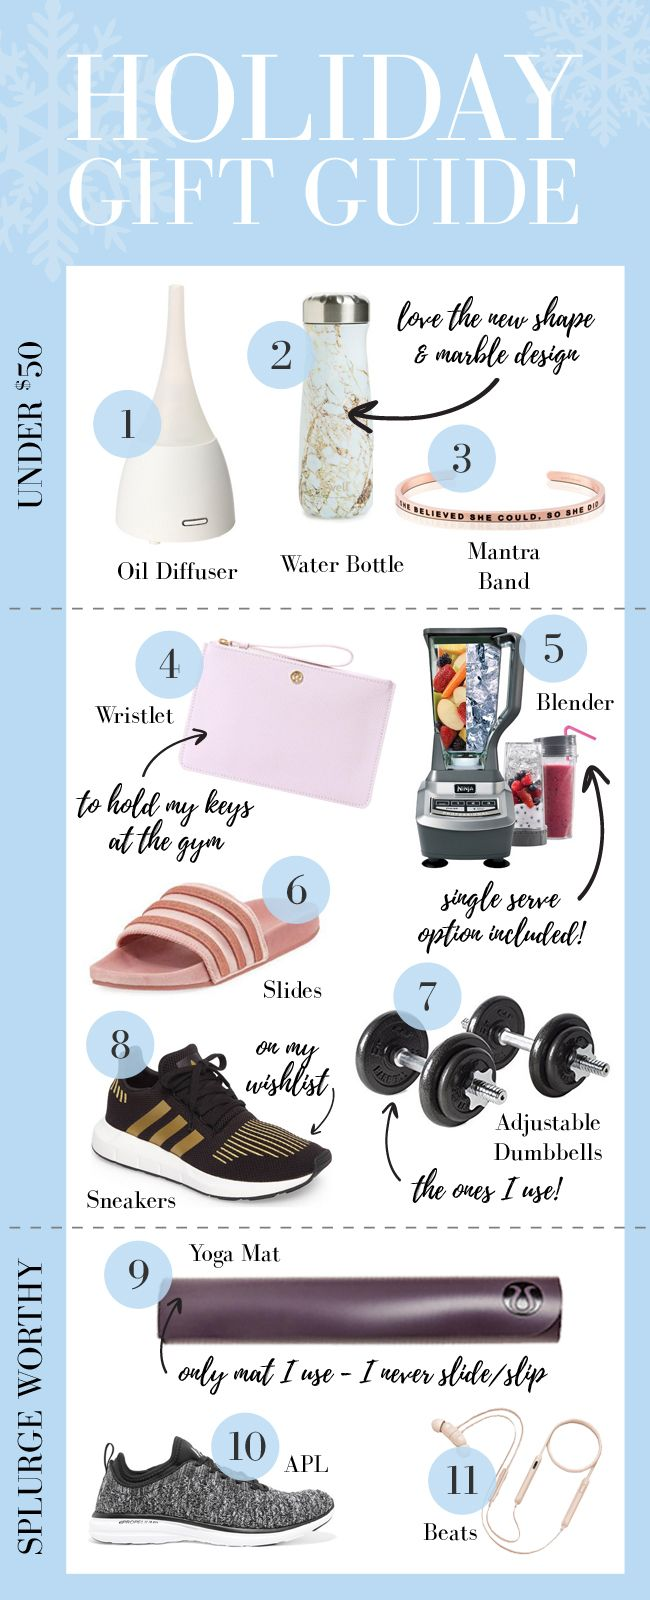 HOLIDAY GIFT GUIDE FOR THE FITNESS LOVING WOMAN